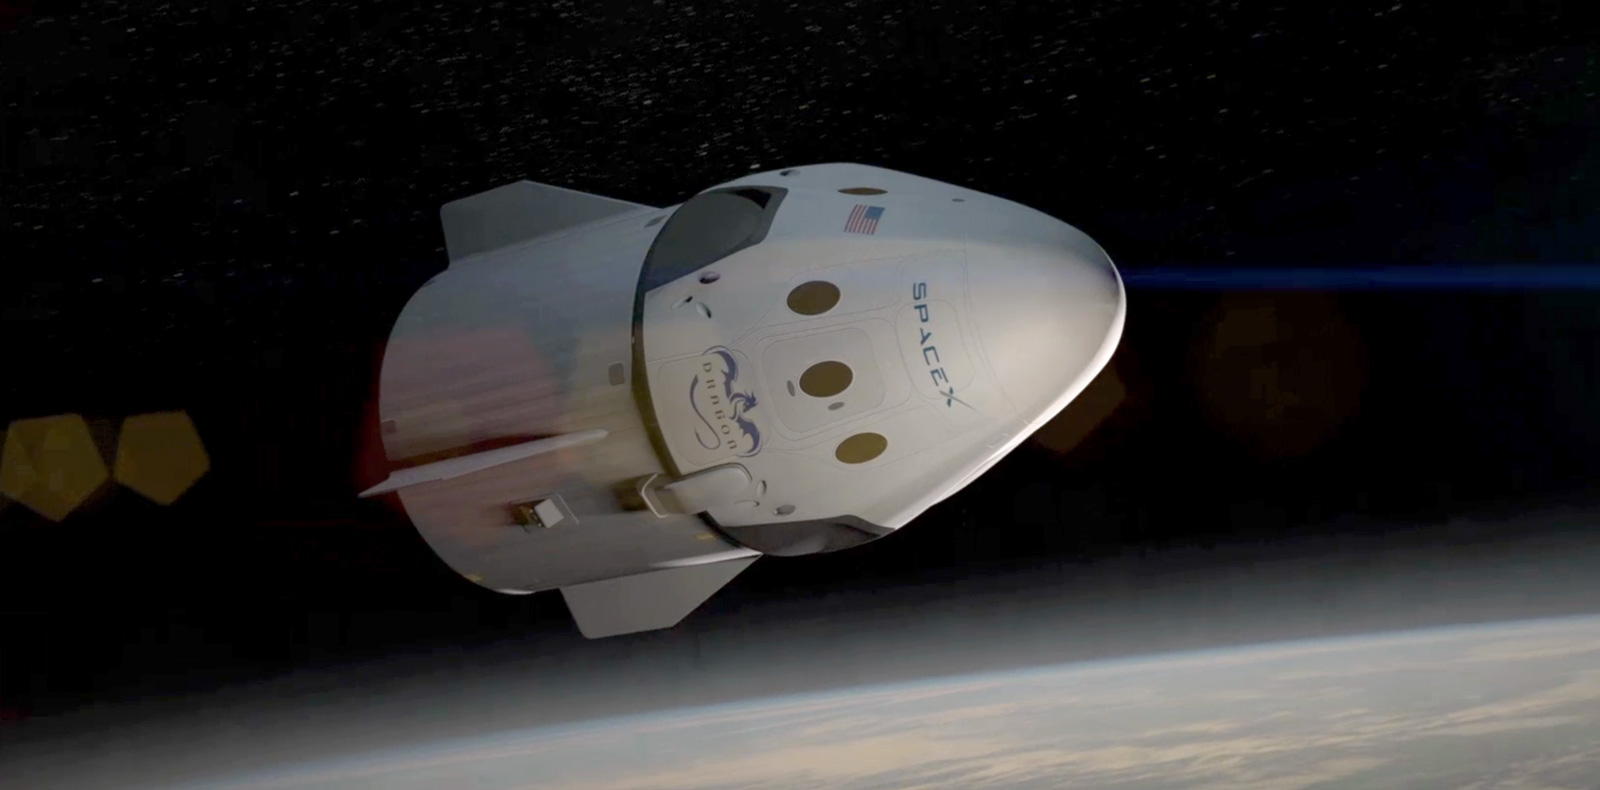 With the unveiling of the Dragon V2 spaceship, SpaceX is another step closer to shoot for the Moon and beyond. The new spaceship from Tesla electric car manufacturer, Elon Musk, is a low-earth orbit craft designed to ferry NASA astronauts to the International Space Station (ISS). SpaceX is competing against the Boeing Company, Blue Origin, and the Sierra Nevada Corporation to create space taxiÕs to replace the now retired NASA Space Shuttle fleet.